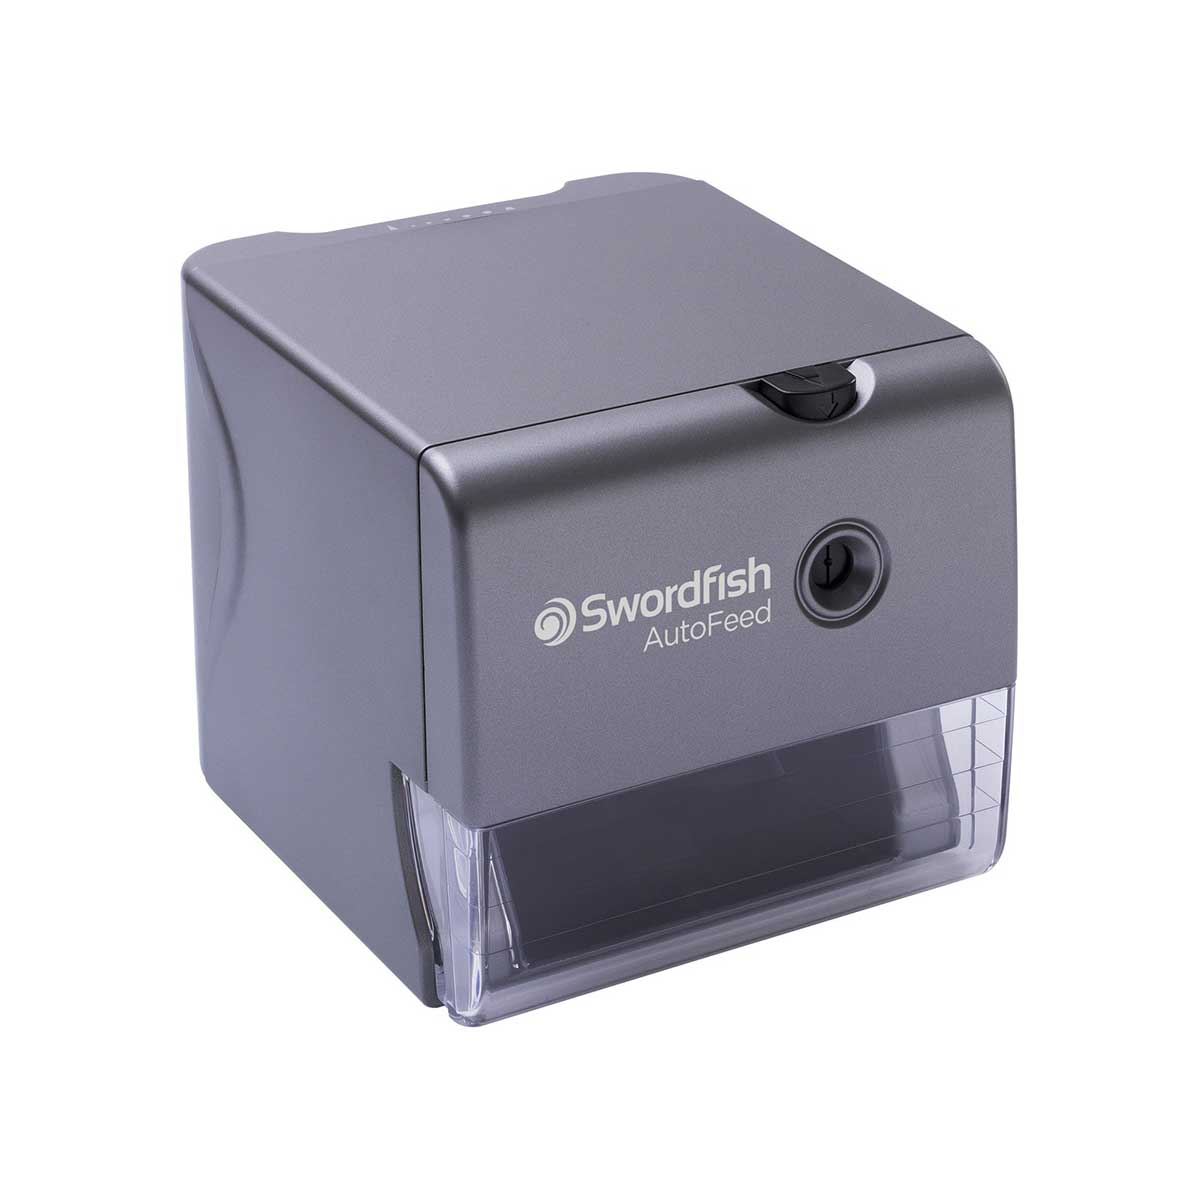 Swordfish AutoFeed Electrical Pencil Sharpener